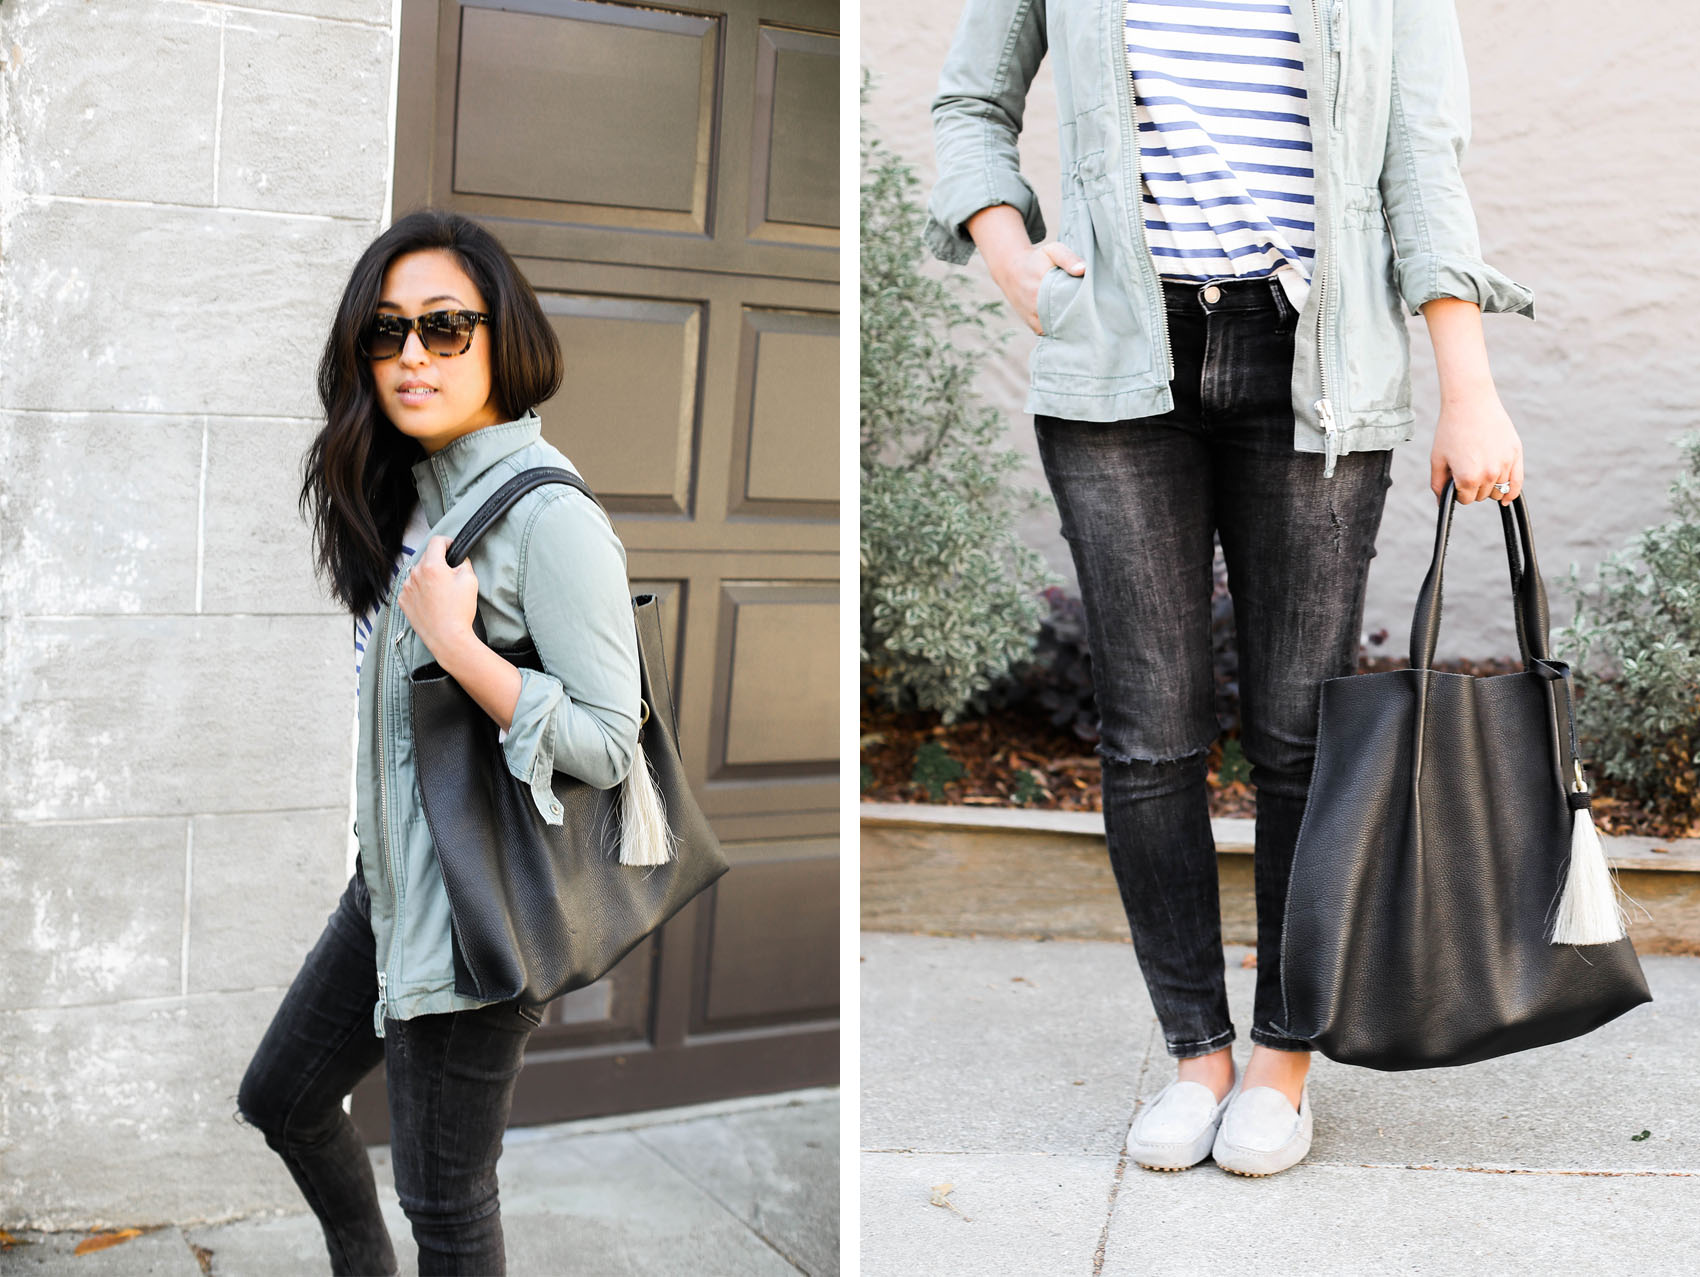 weekend casual style   via @victoriamstudio   striped tee from @morganesezalory, tote from @oliveve